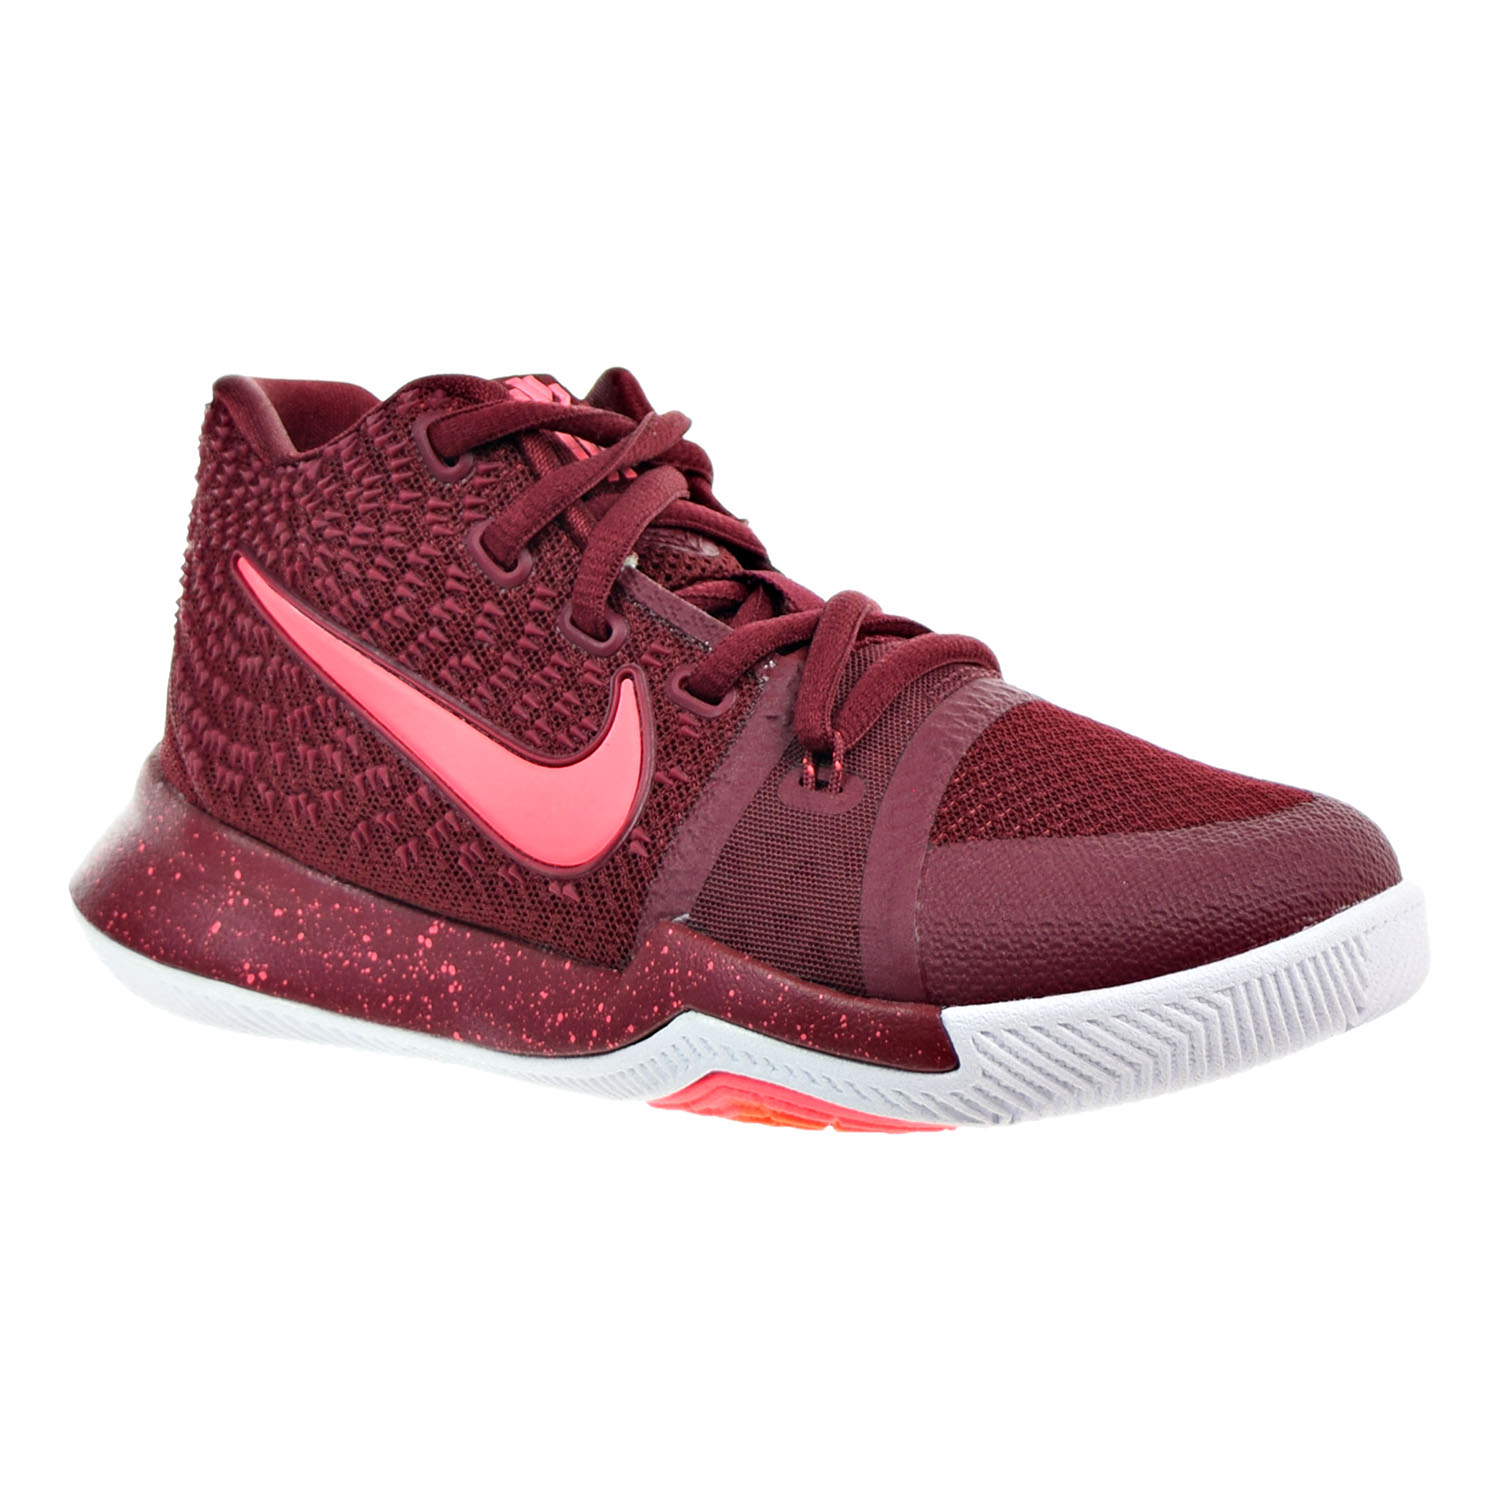 pretty nice d70c6 ee3fa Nike - Nike Kyrie 3 Little Kids (PS) Shoes Team Red/White ...